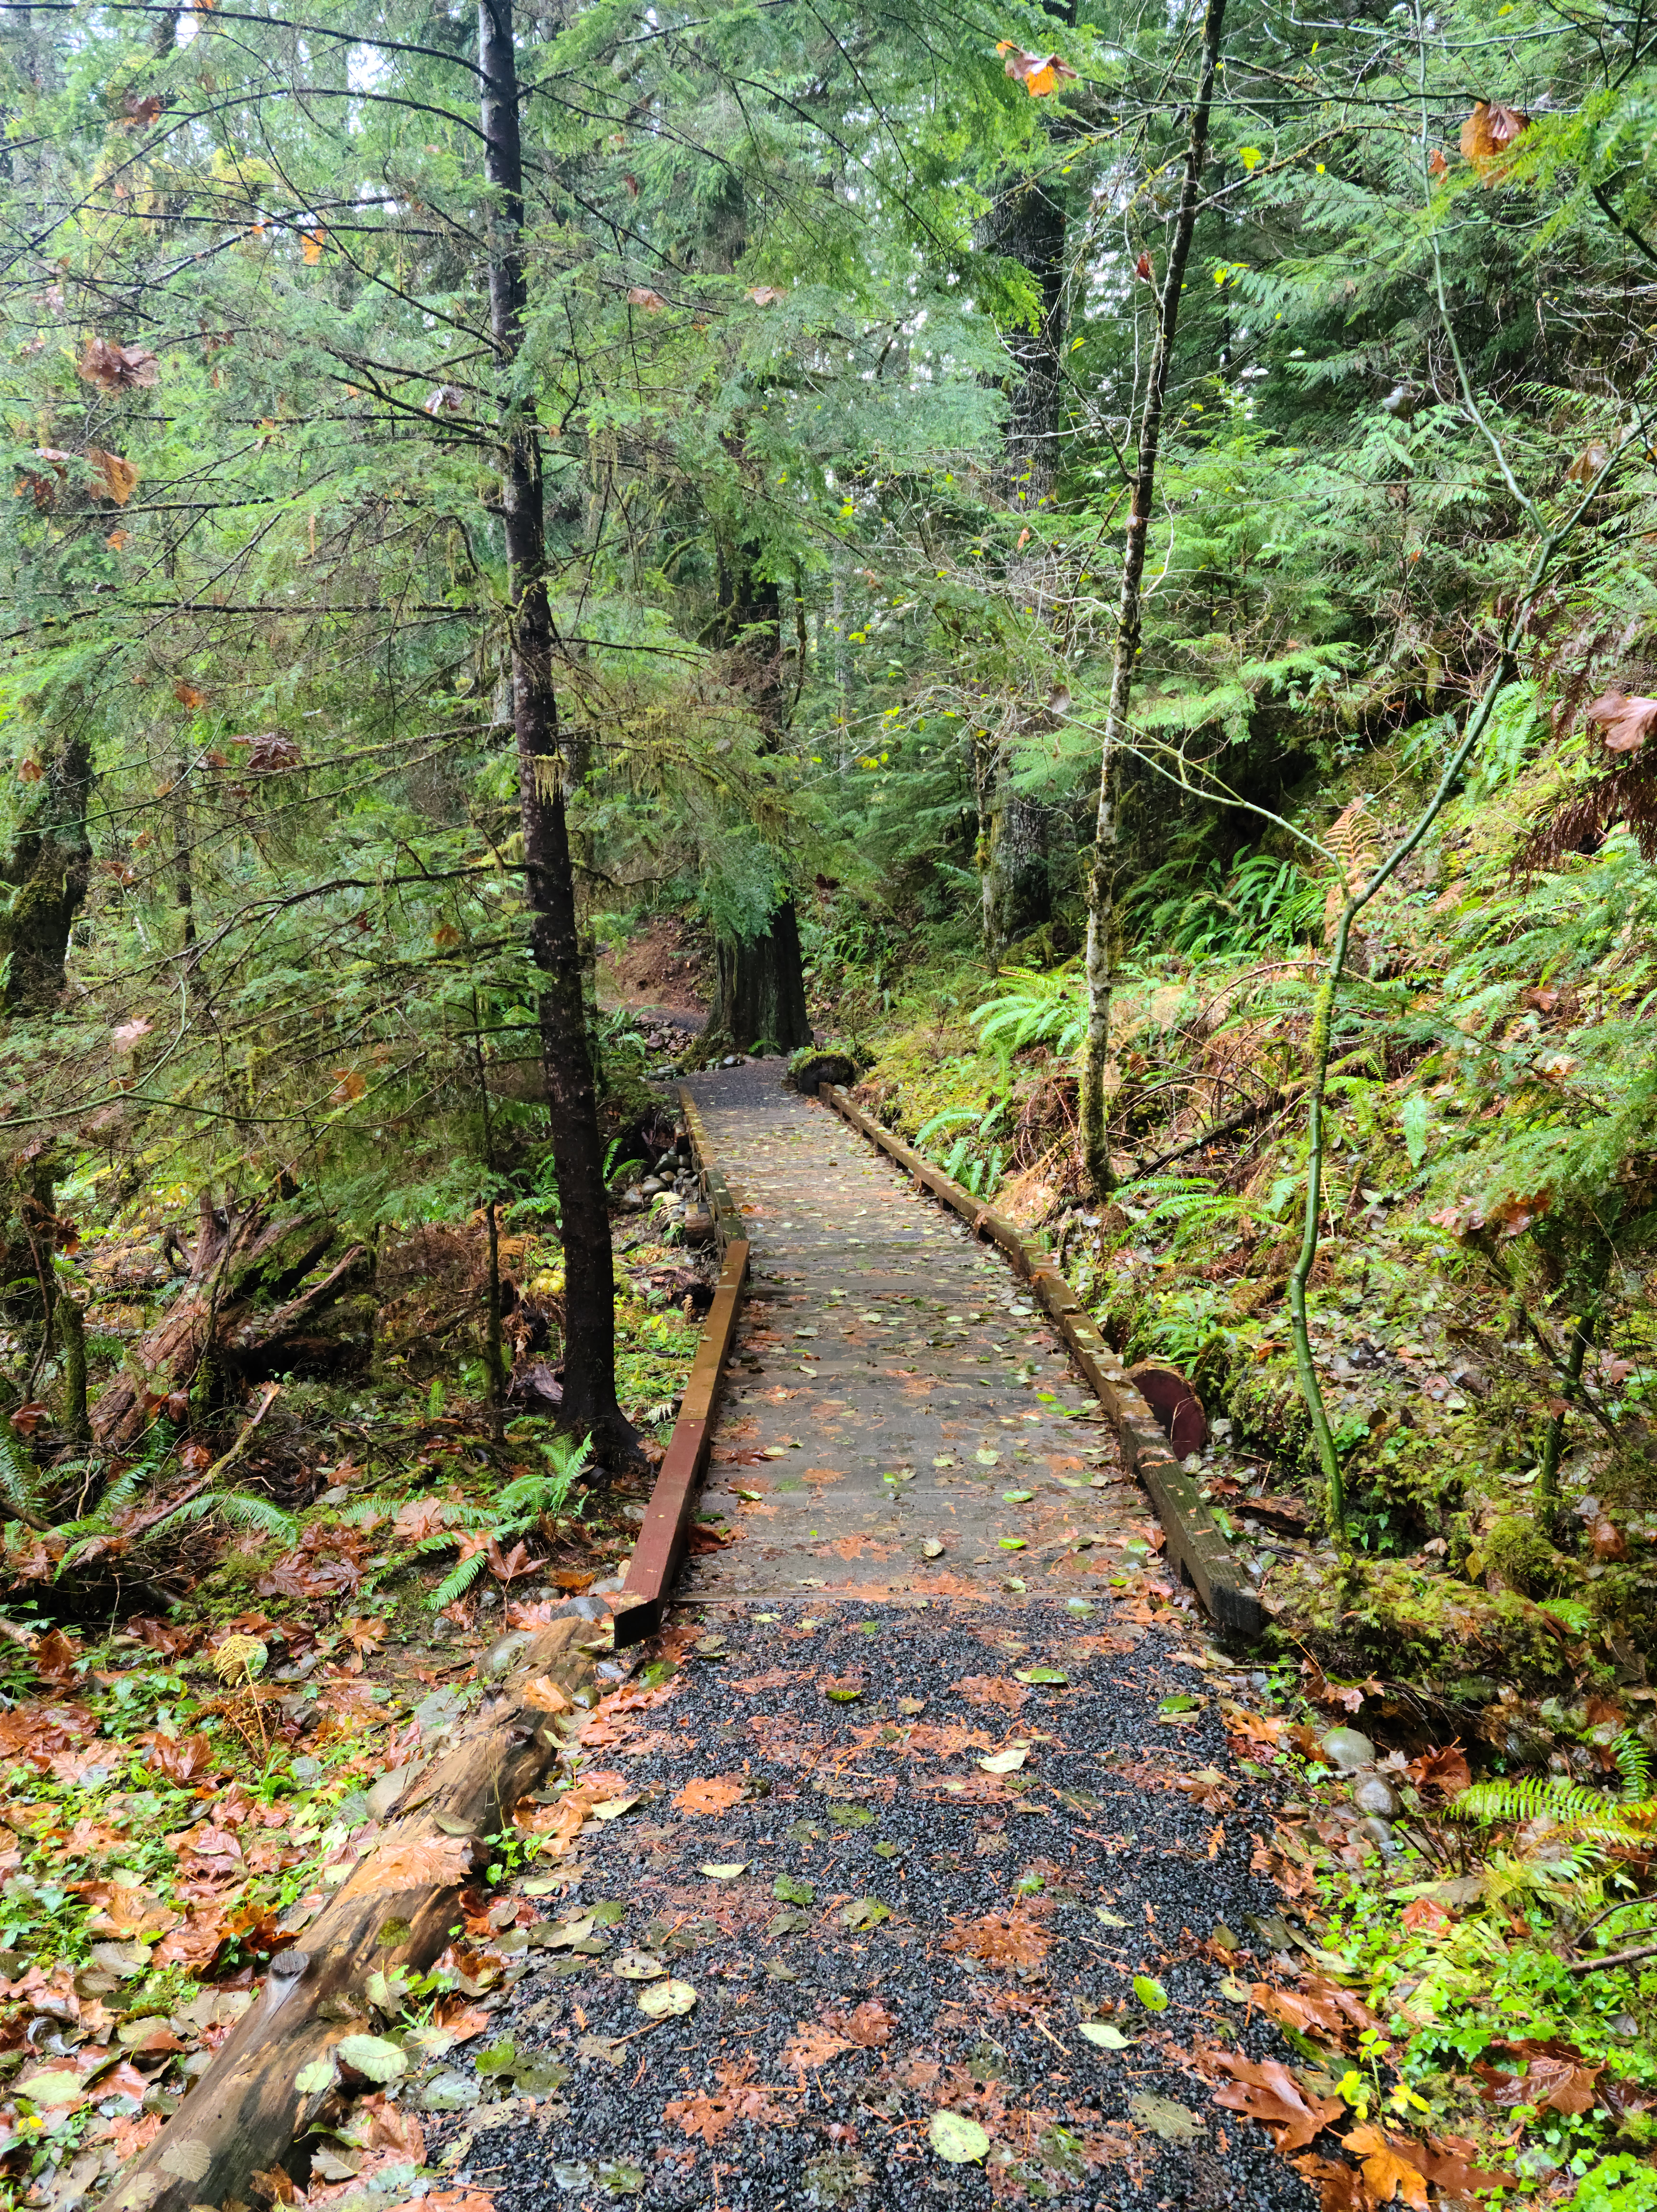 A wooden boardwalk travels through the forest on the Big Creek Nature Trail